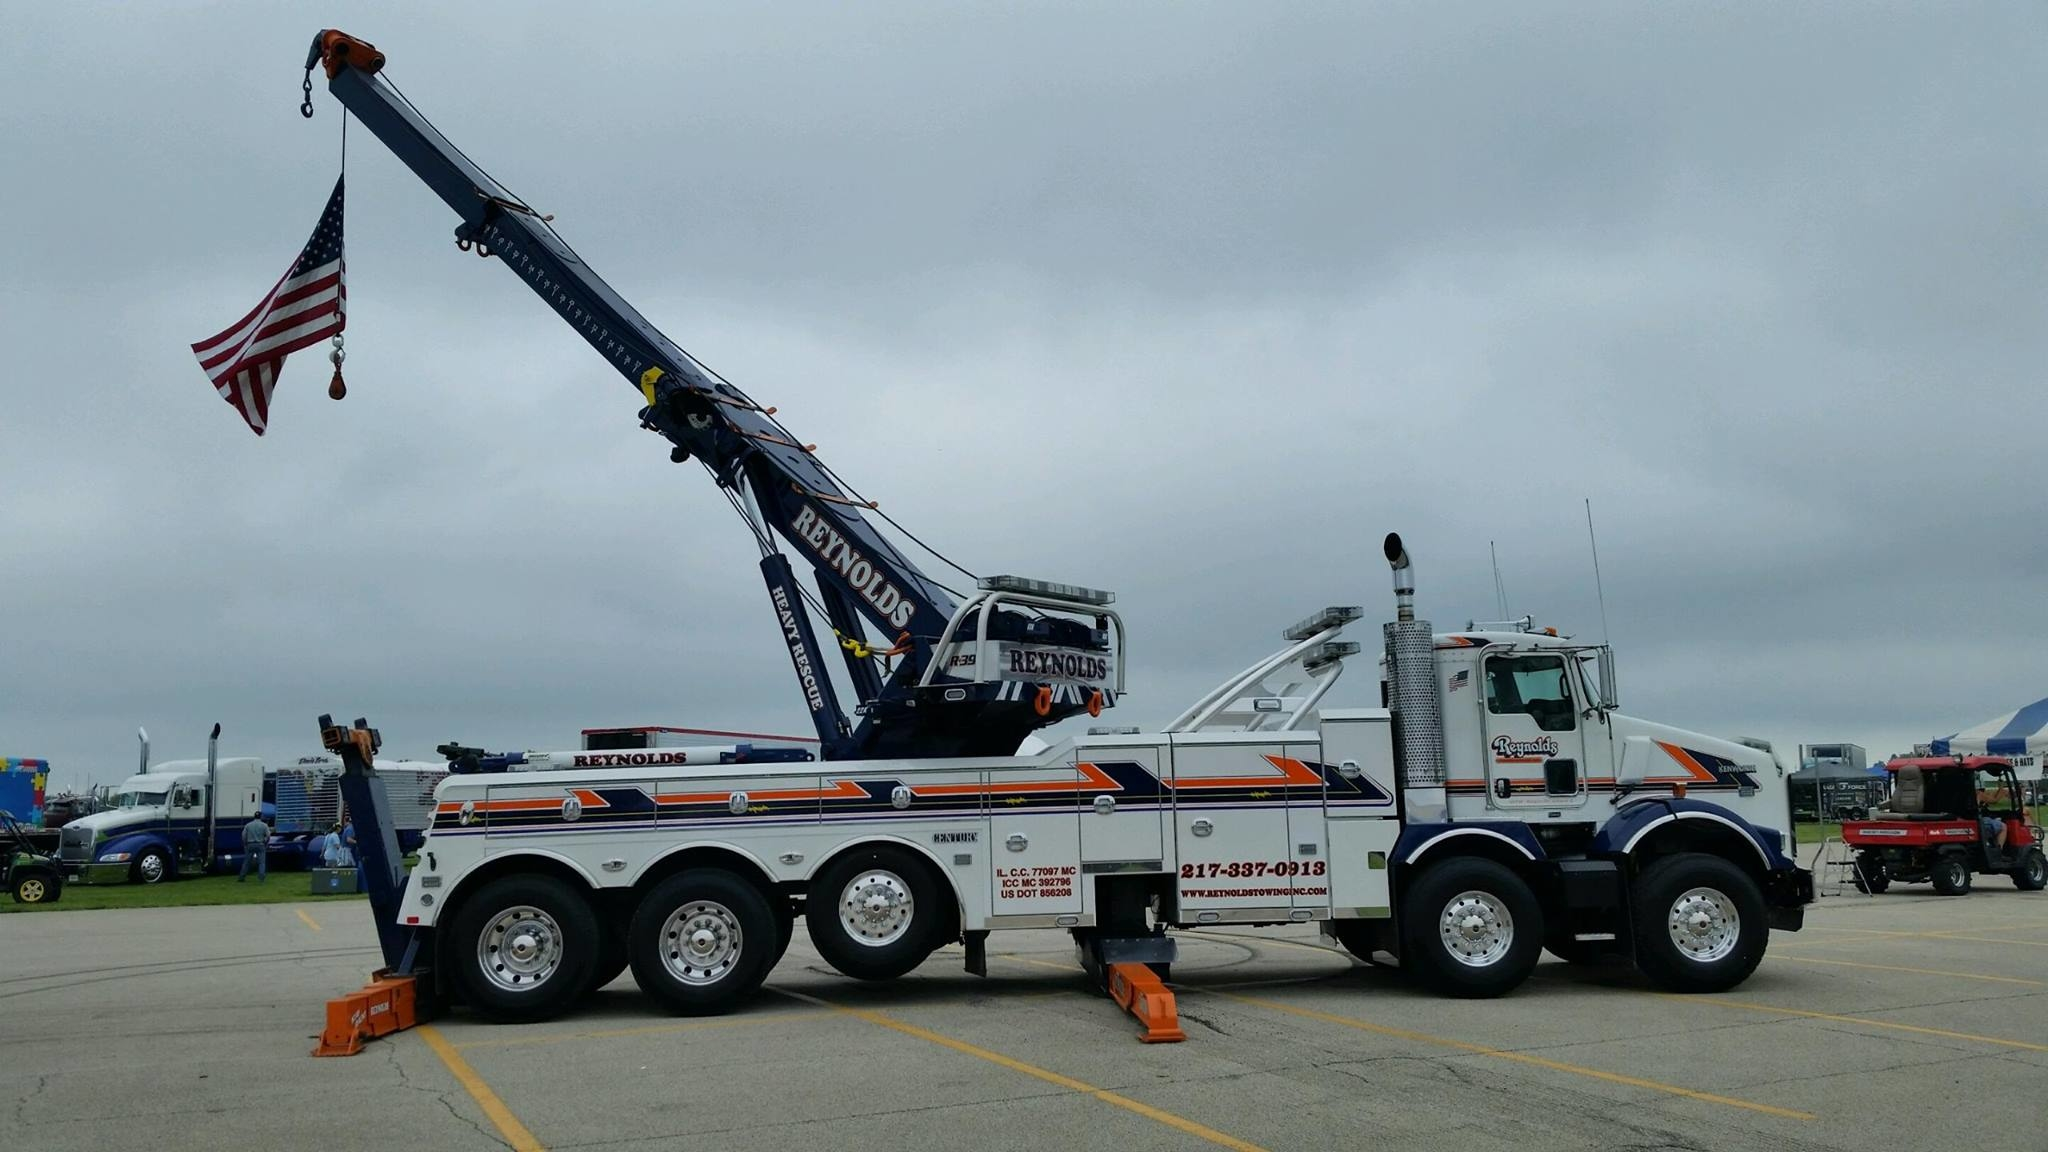 Reynolds Towing Service image 27